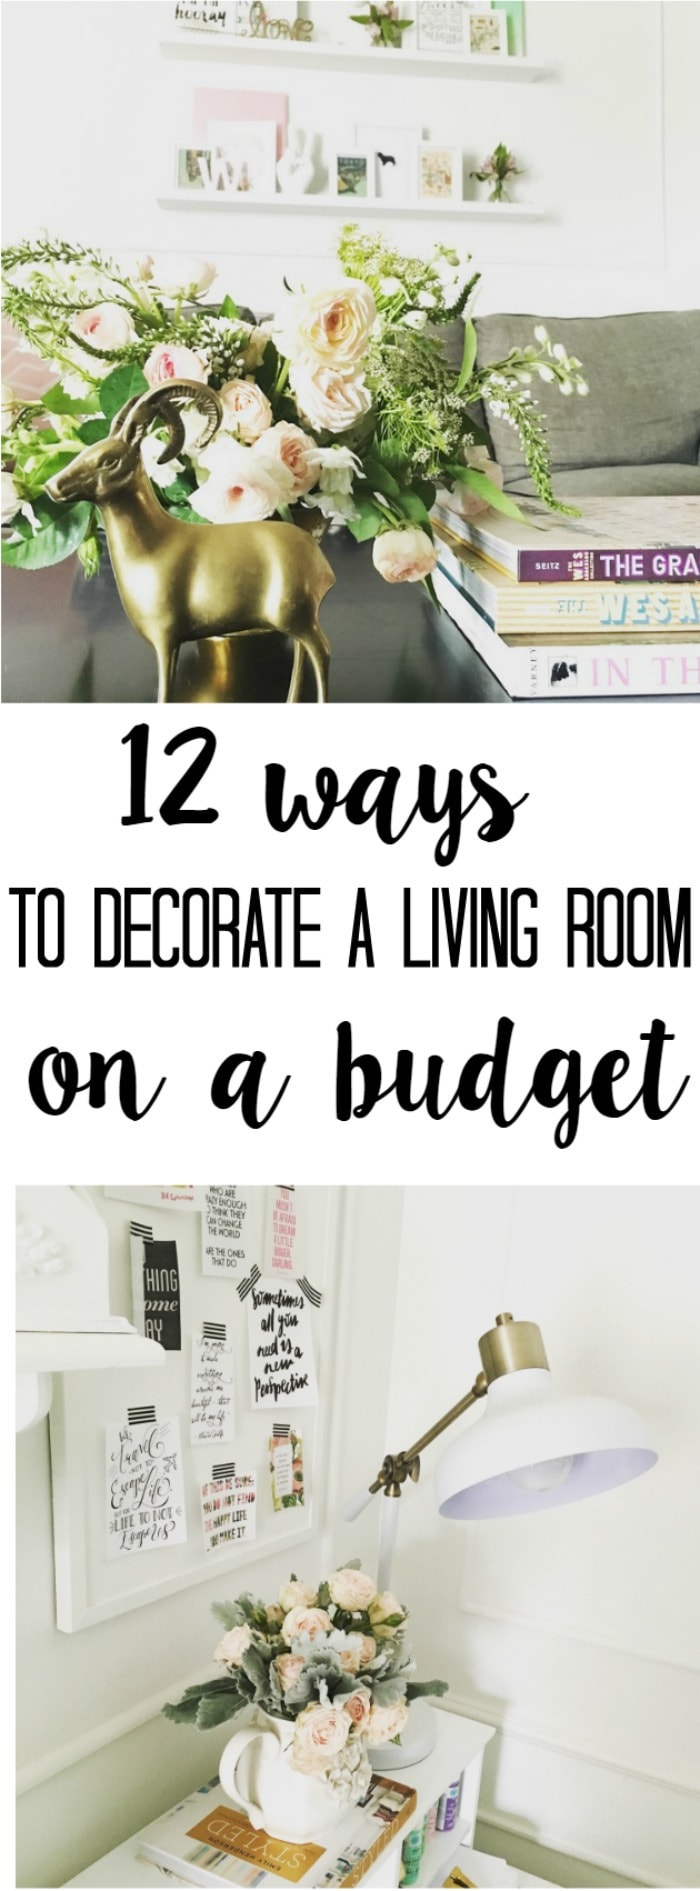 For Decorating A Living Room On A Budget 12 Tips For Decorating A Living Room On A Budget A Houseful Of